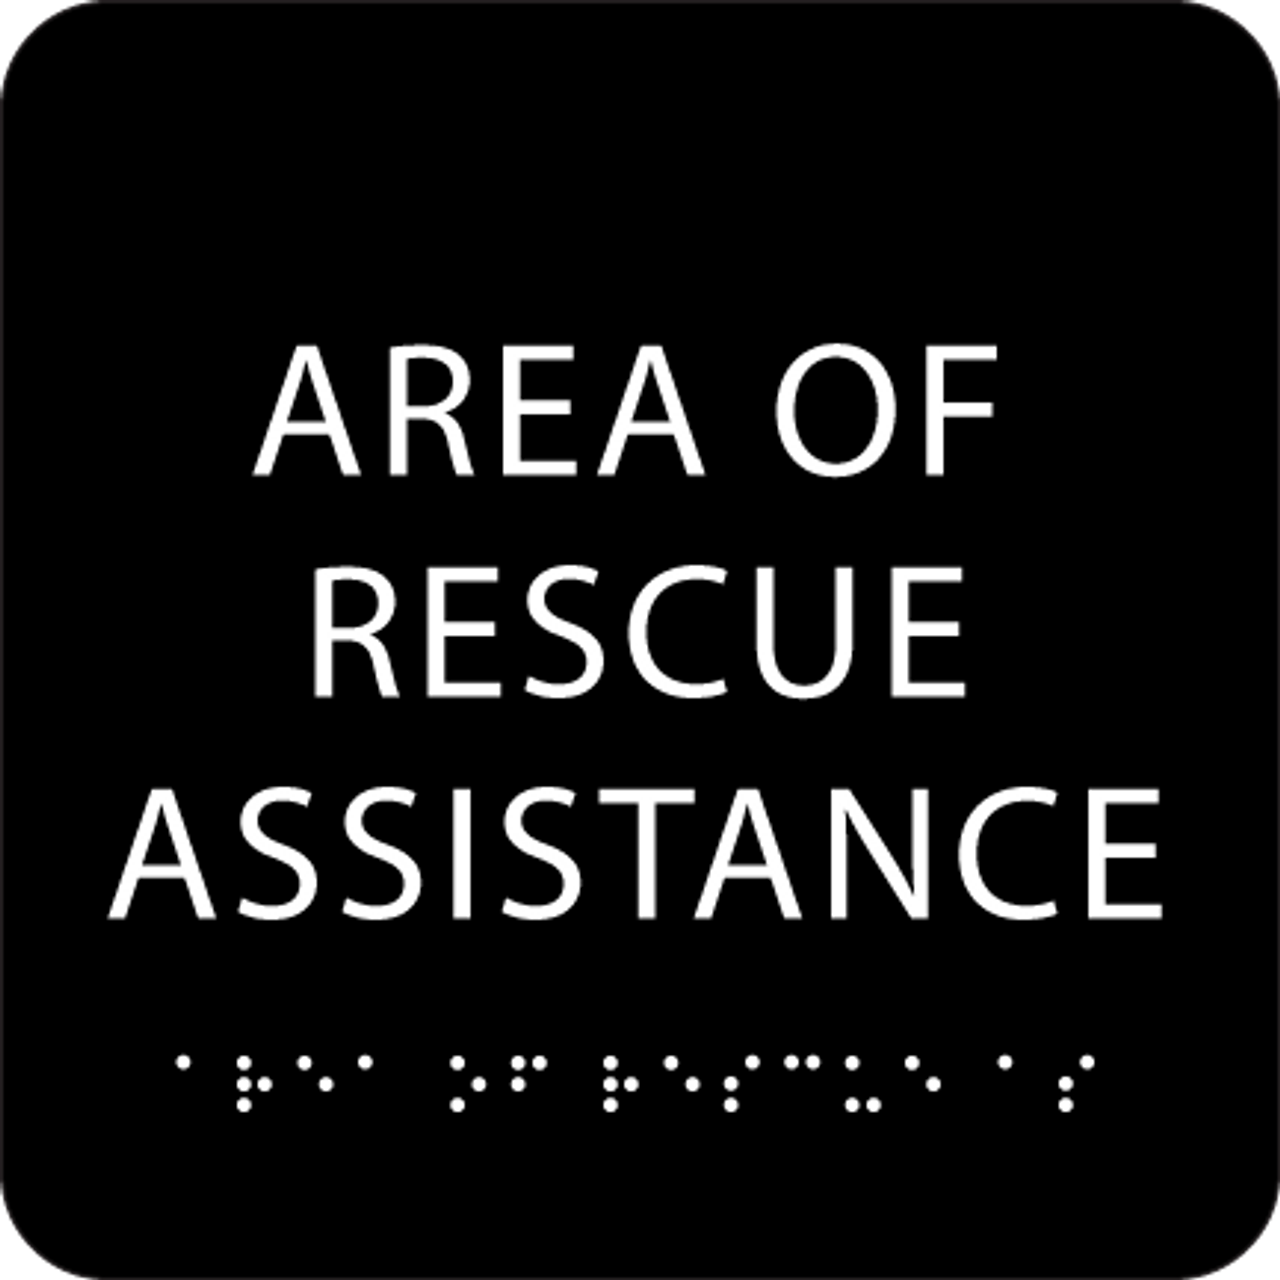 Black Area of Rescue Assistance ADA Sign